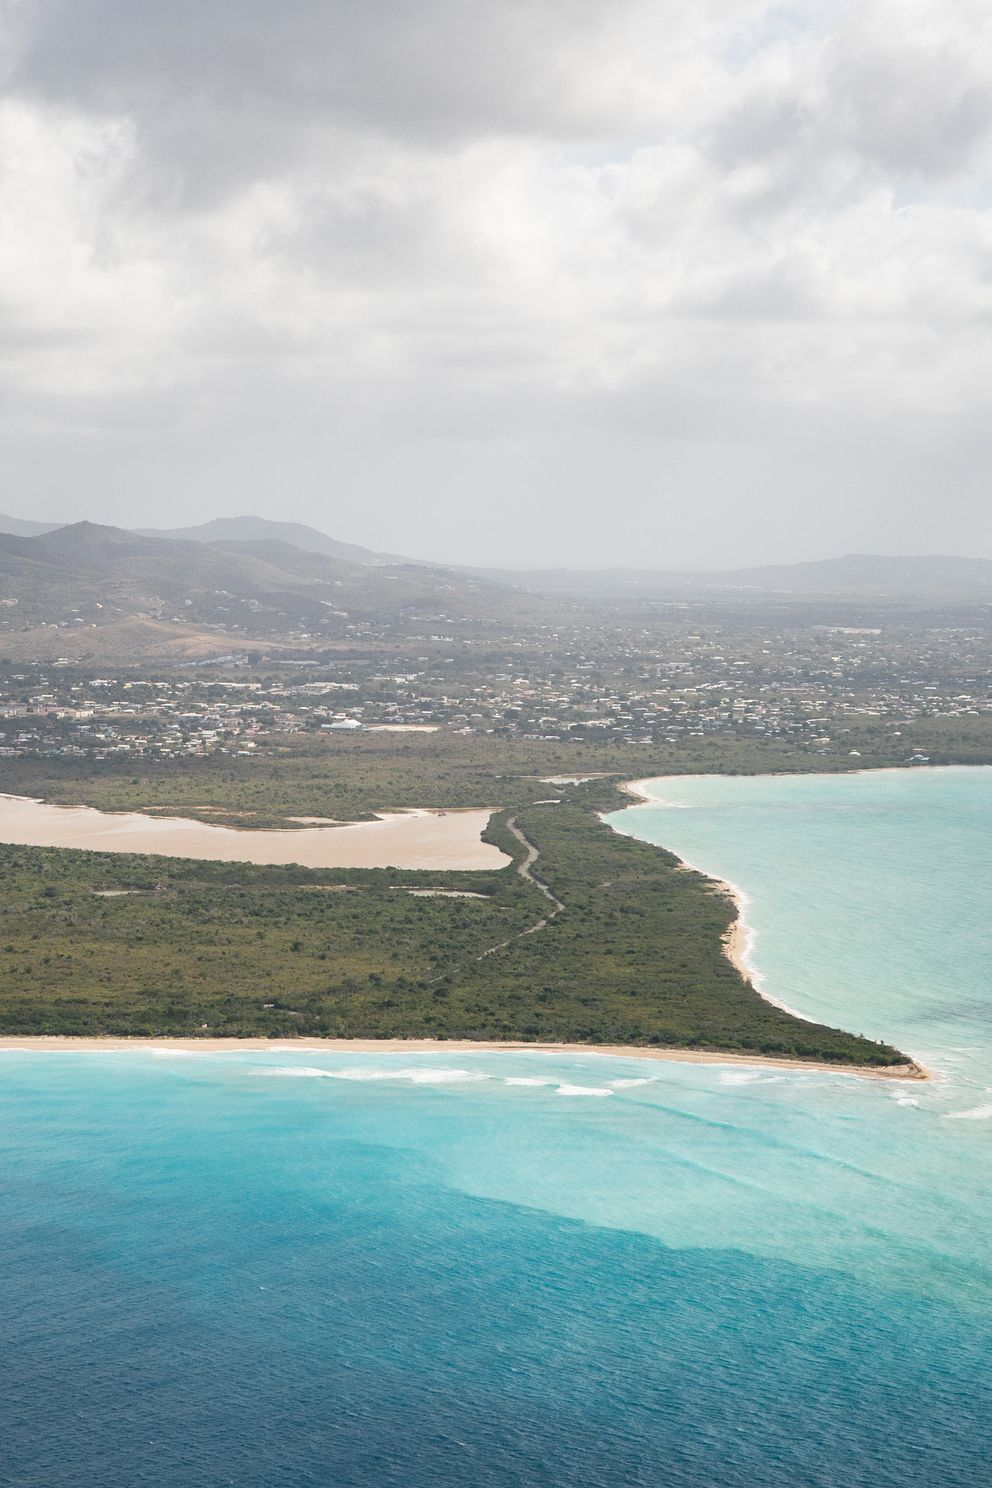 Sand Point beach in St. Croix, U.S. Virgin Islands, on Thursday, March 18, 2021. (Washington Post photo by Salwan Georges)